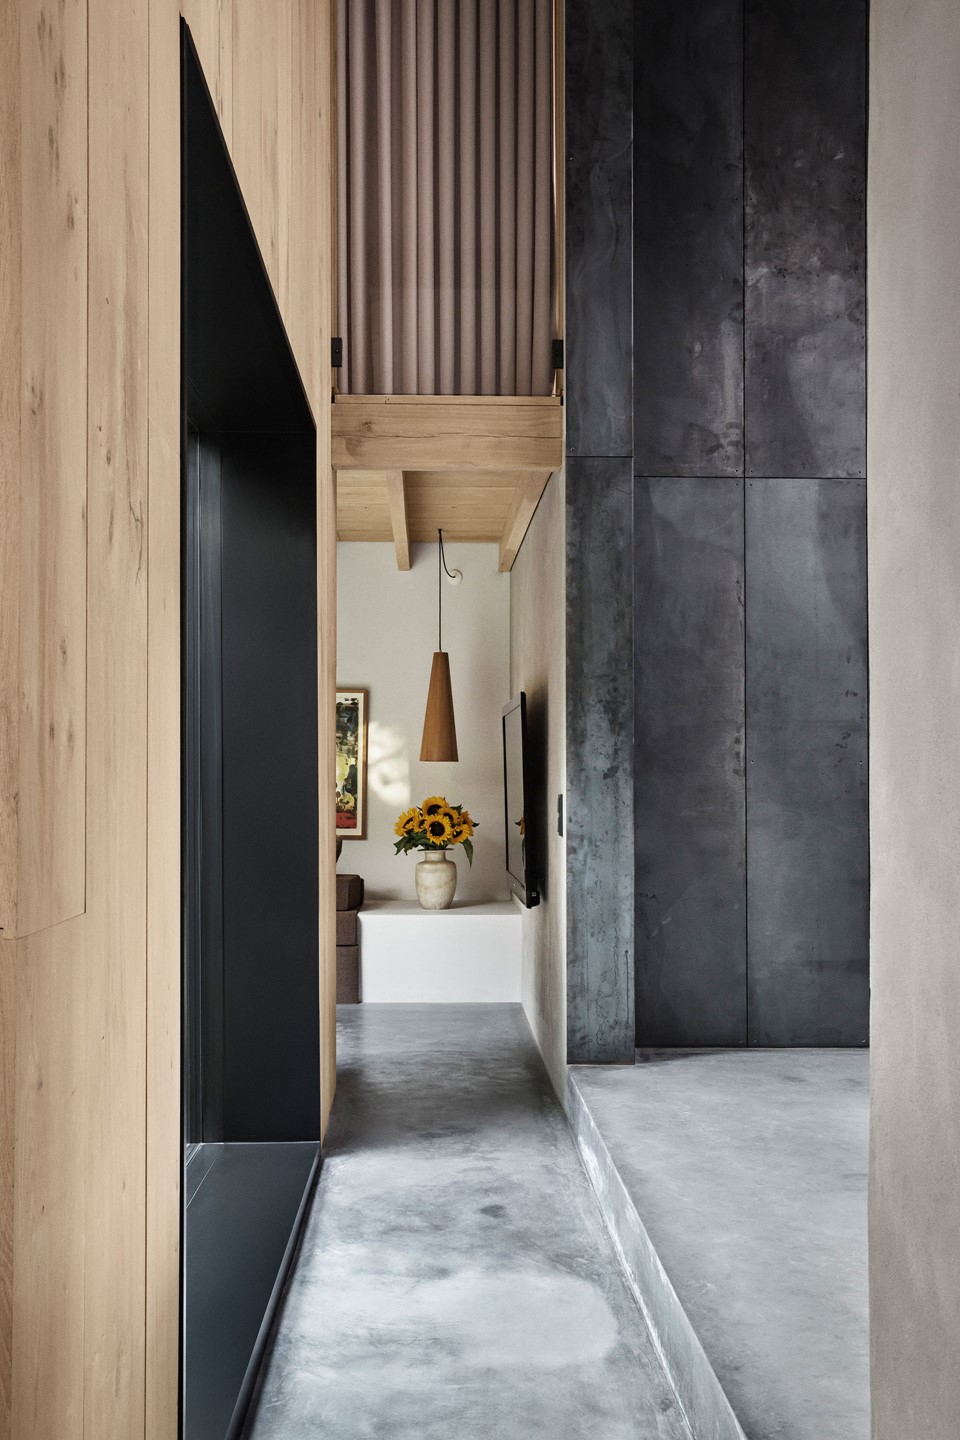 oak-hardwood-wall-cladding-heartoak_natural-oil_peters-house_concrete-hallway_dinesen.jpg